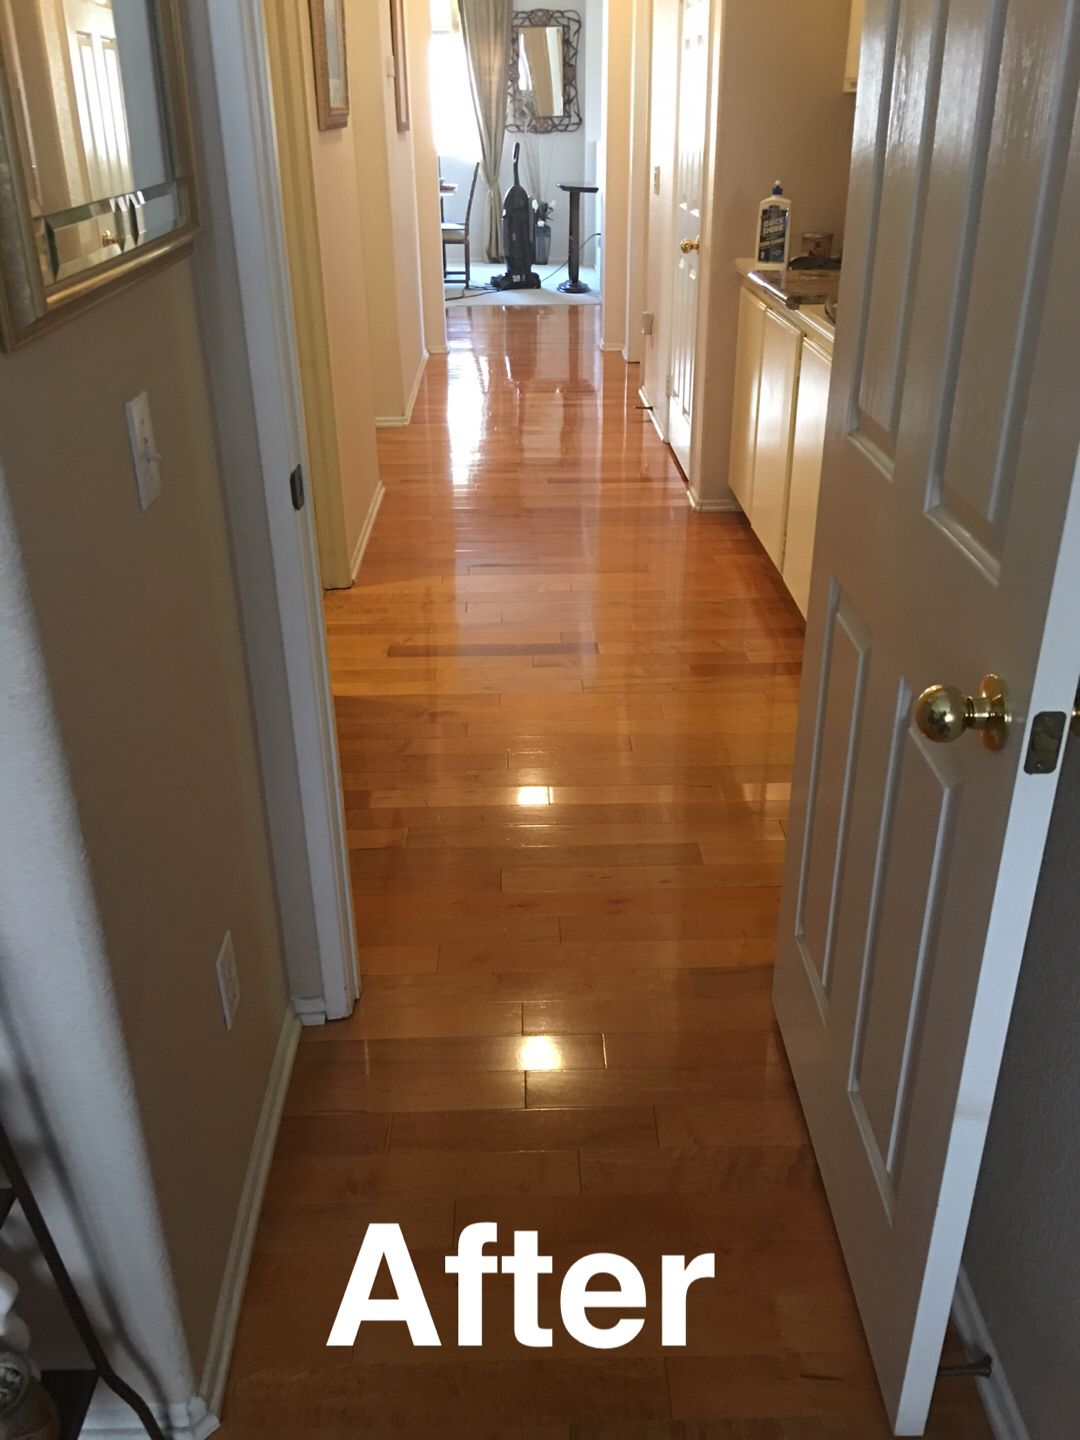 After Polishing My Hardwood Floors using Holloway House Quick Shine Floor  Cleaner & Floor Finish # - After Polishing My Hardwood Floors Using Holloway House Quick